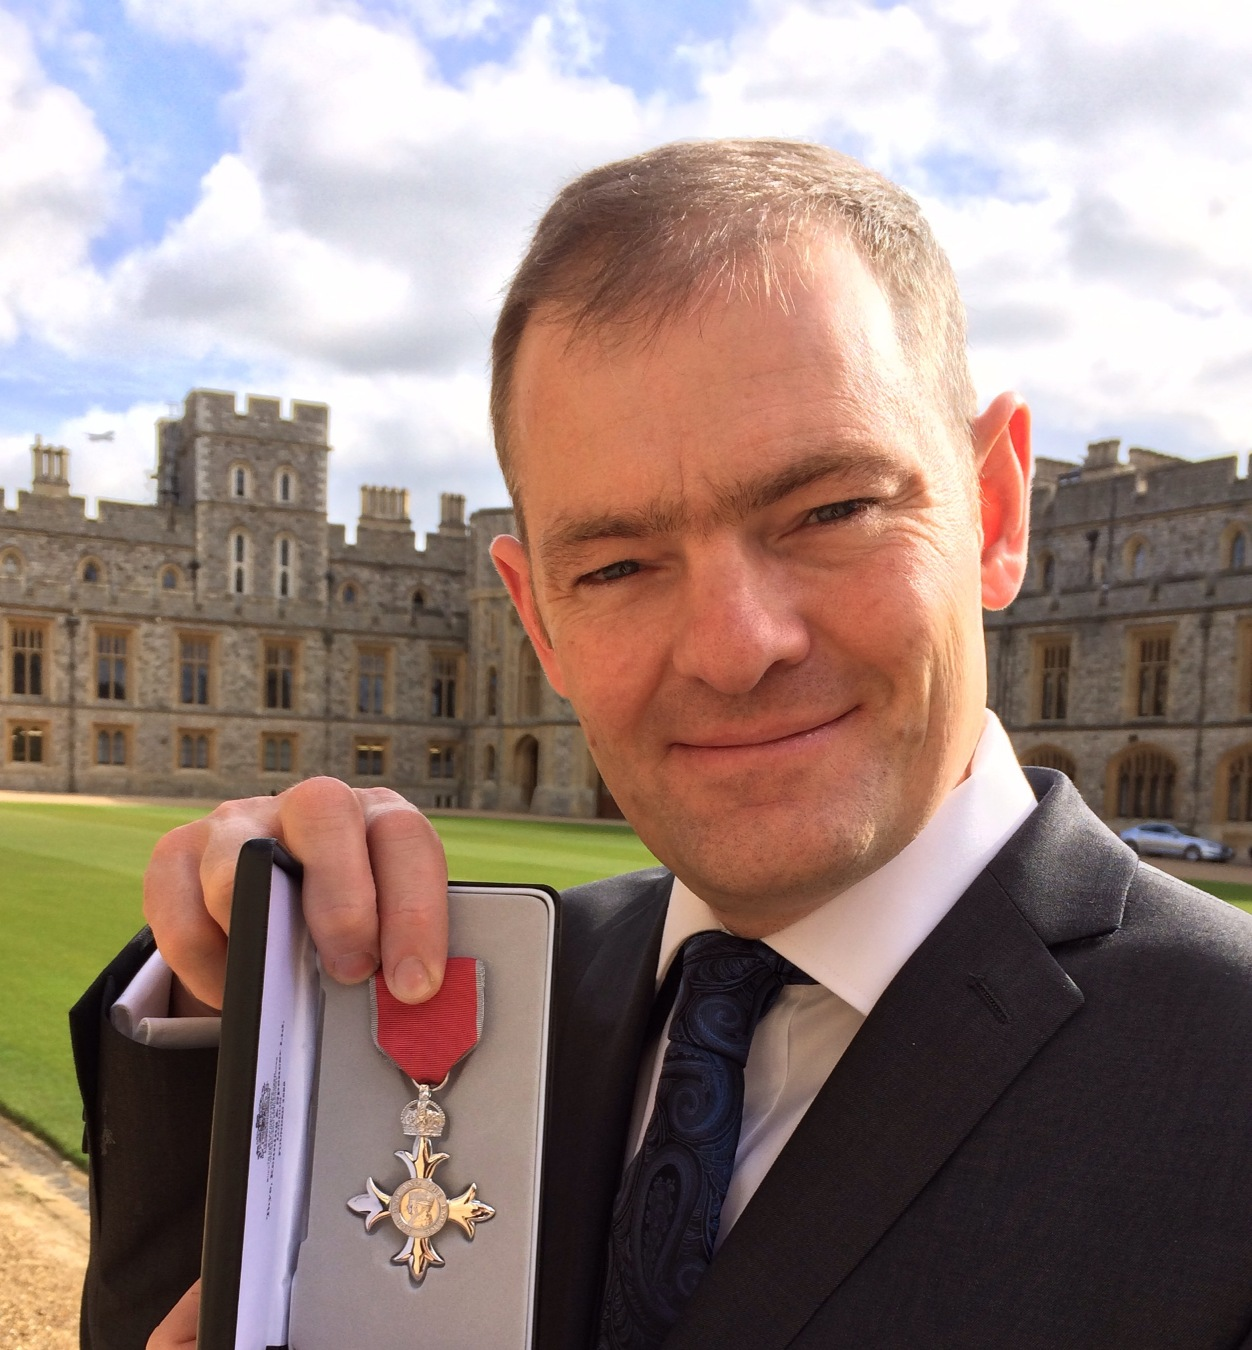 Dr Malcolm Russell was formally invested as a Member of the Order of the British Empire at Windsor Castle after being named in the New Year's Honours List.